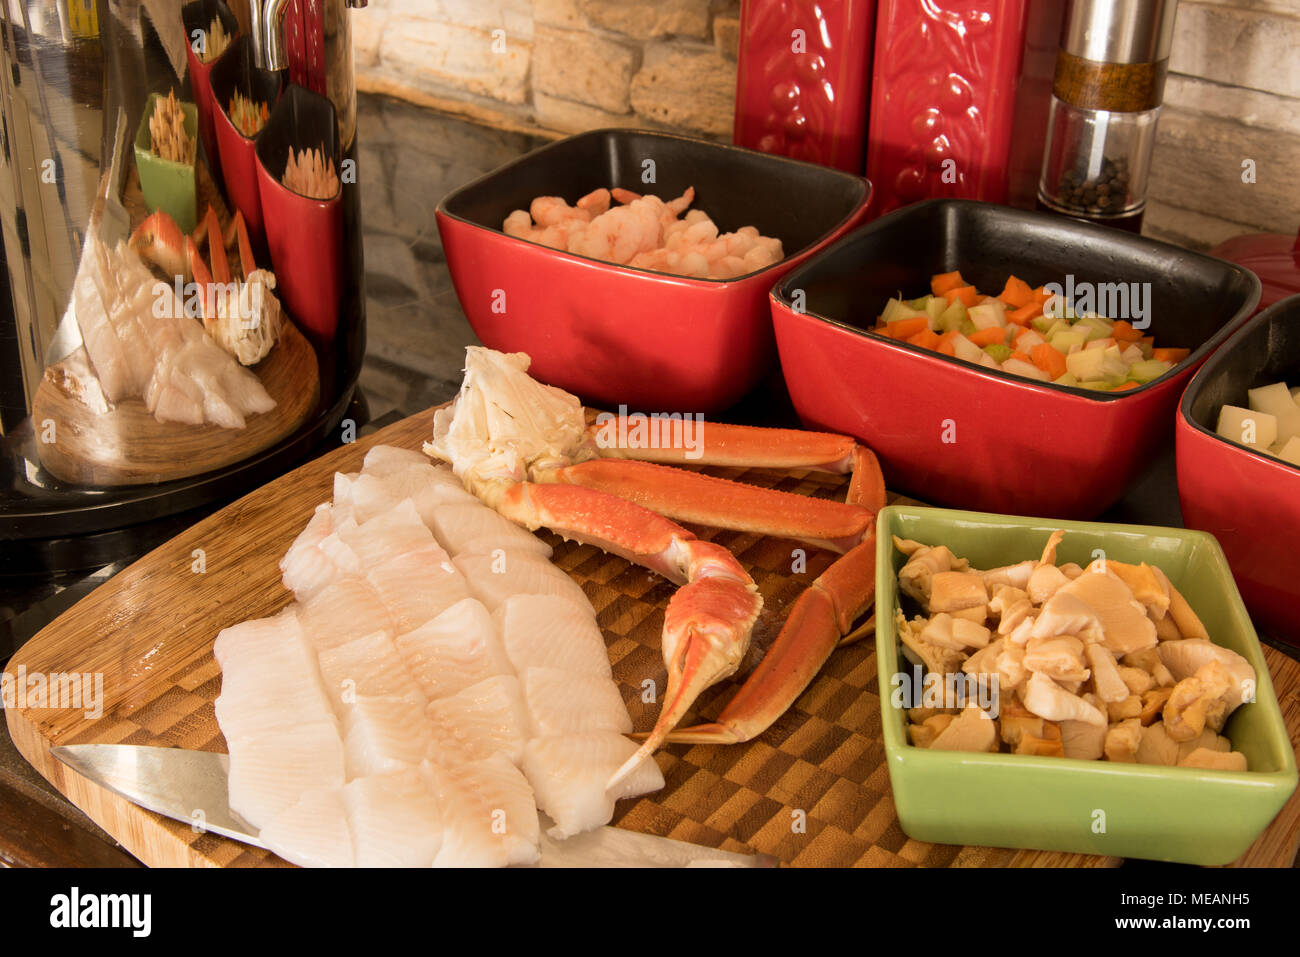 Preparing a classic and delicious East Coast fish chowder - Stock Image